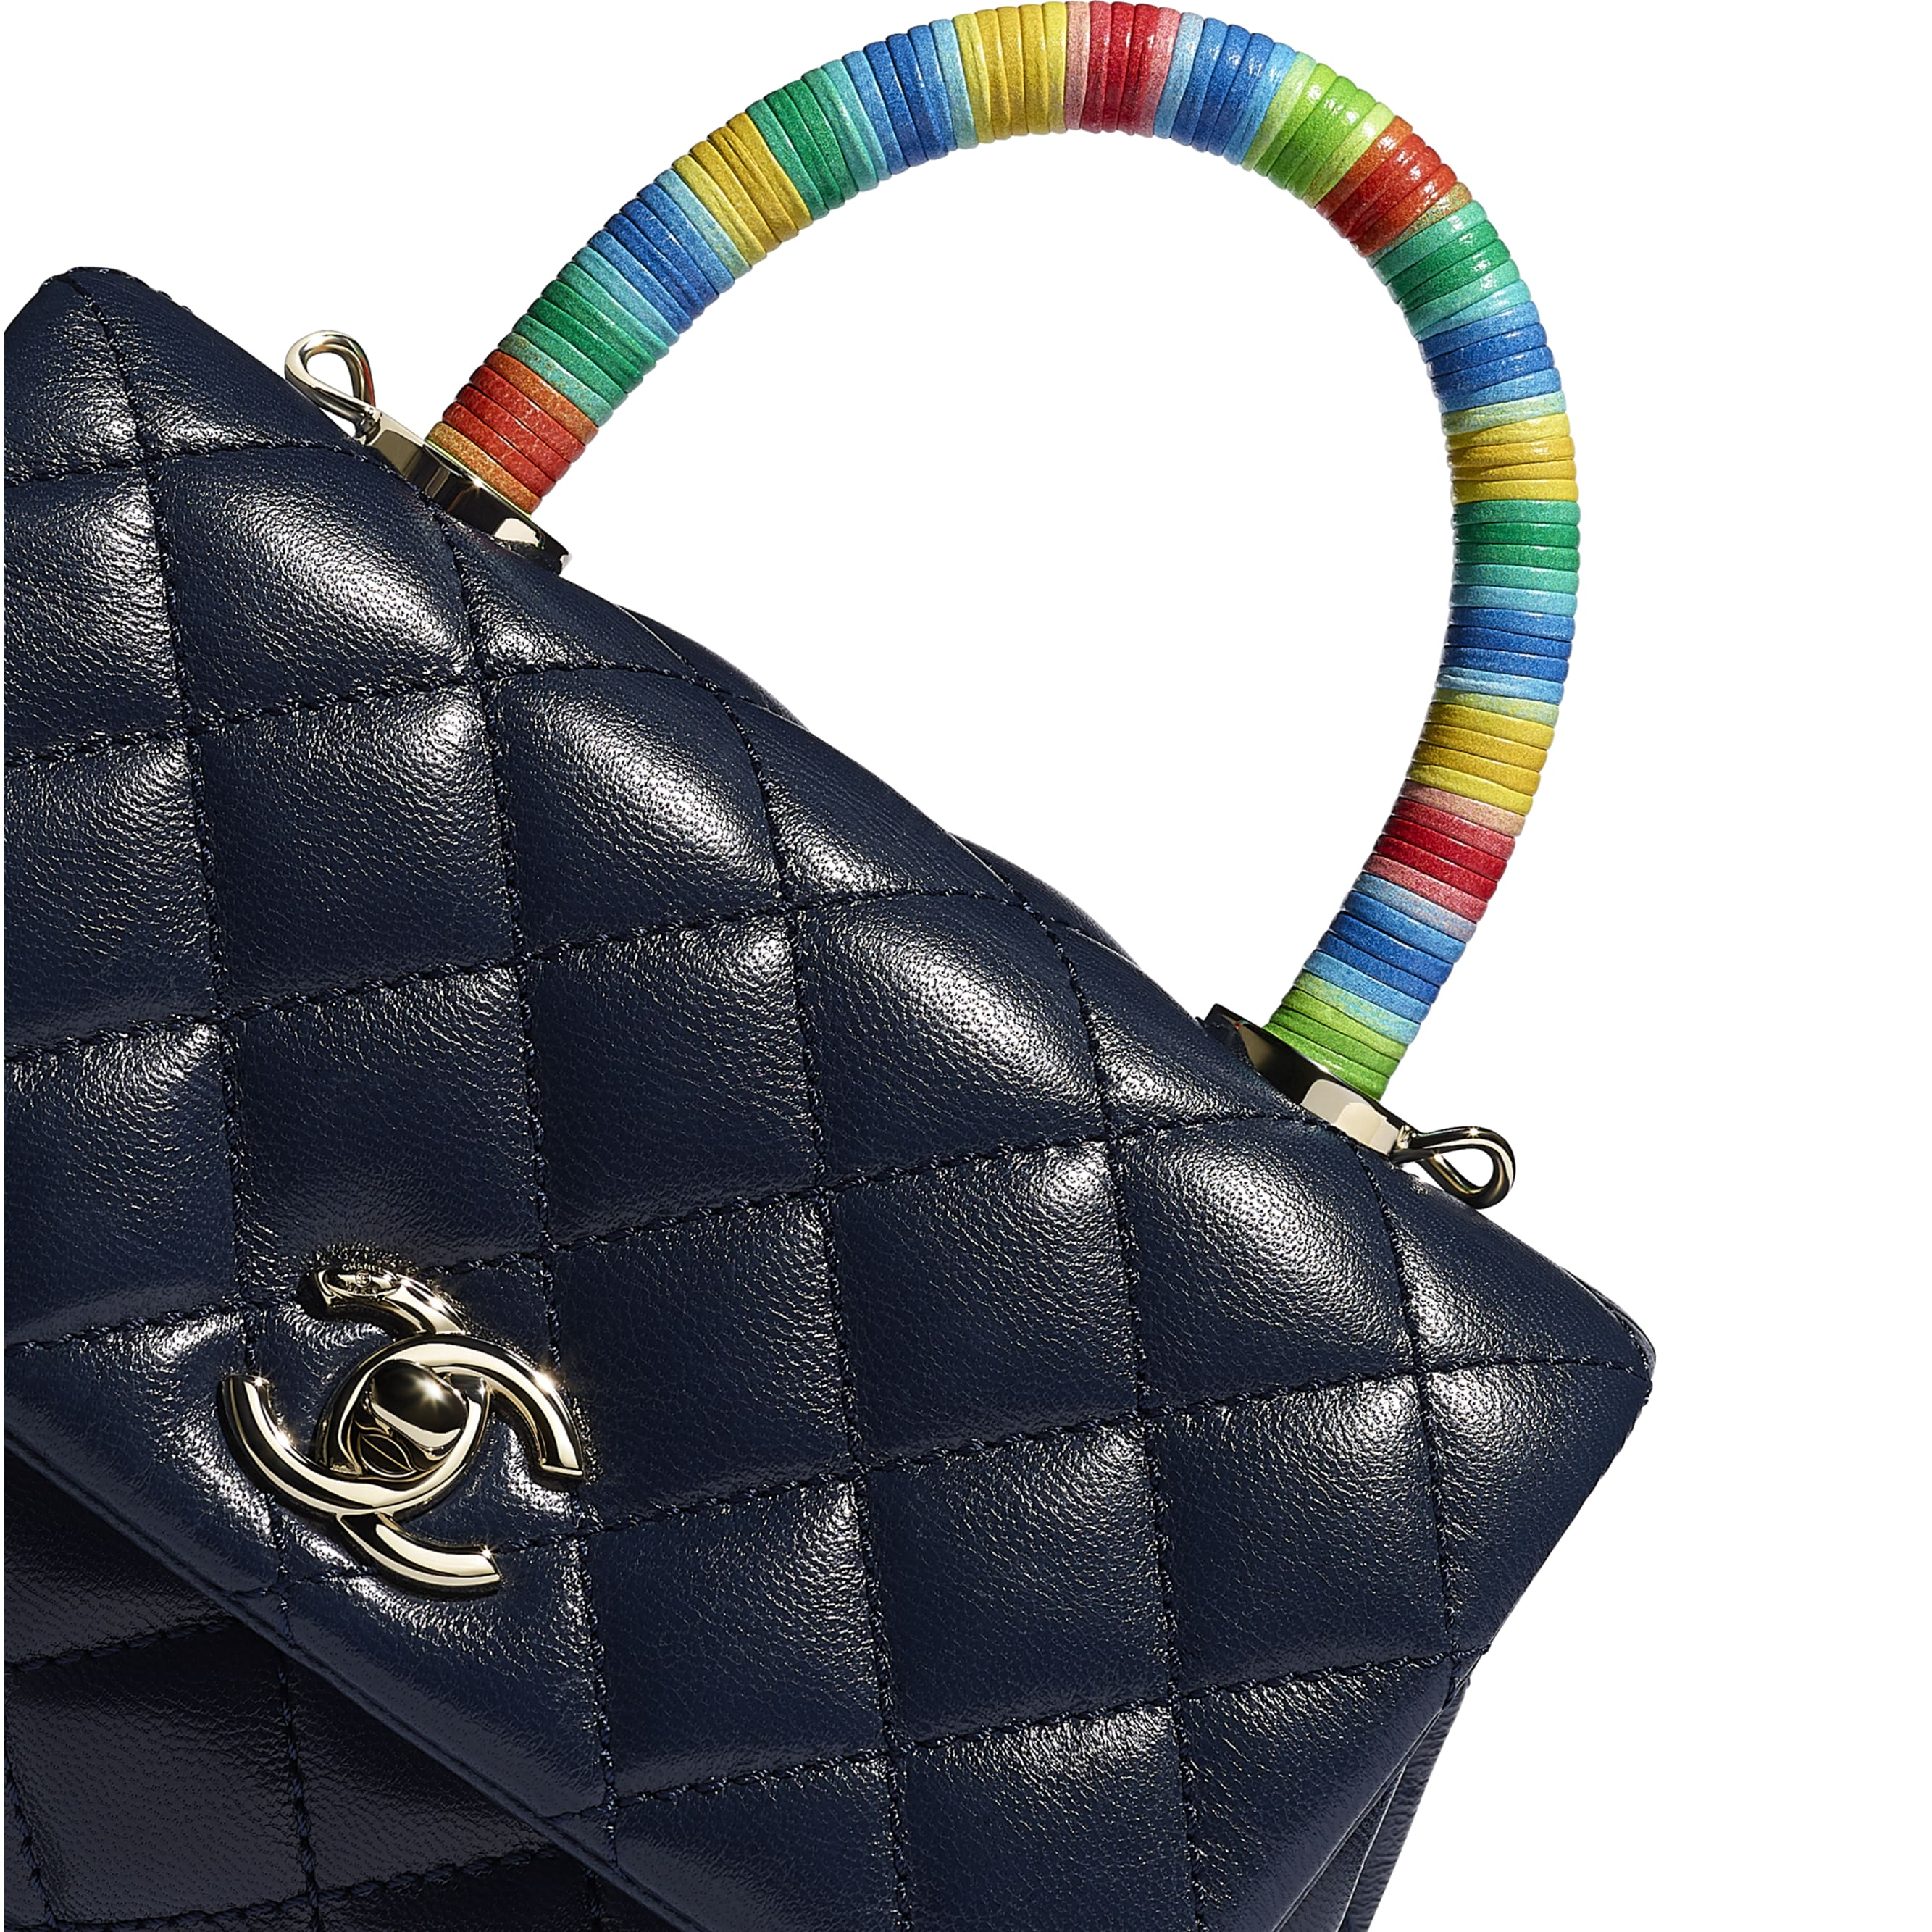 Mini Flap Bag with Top Handle - Navy Blue - Goatskin & Gold-Tone Metal - CHANEL - Extra view - see standard sized version